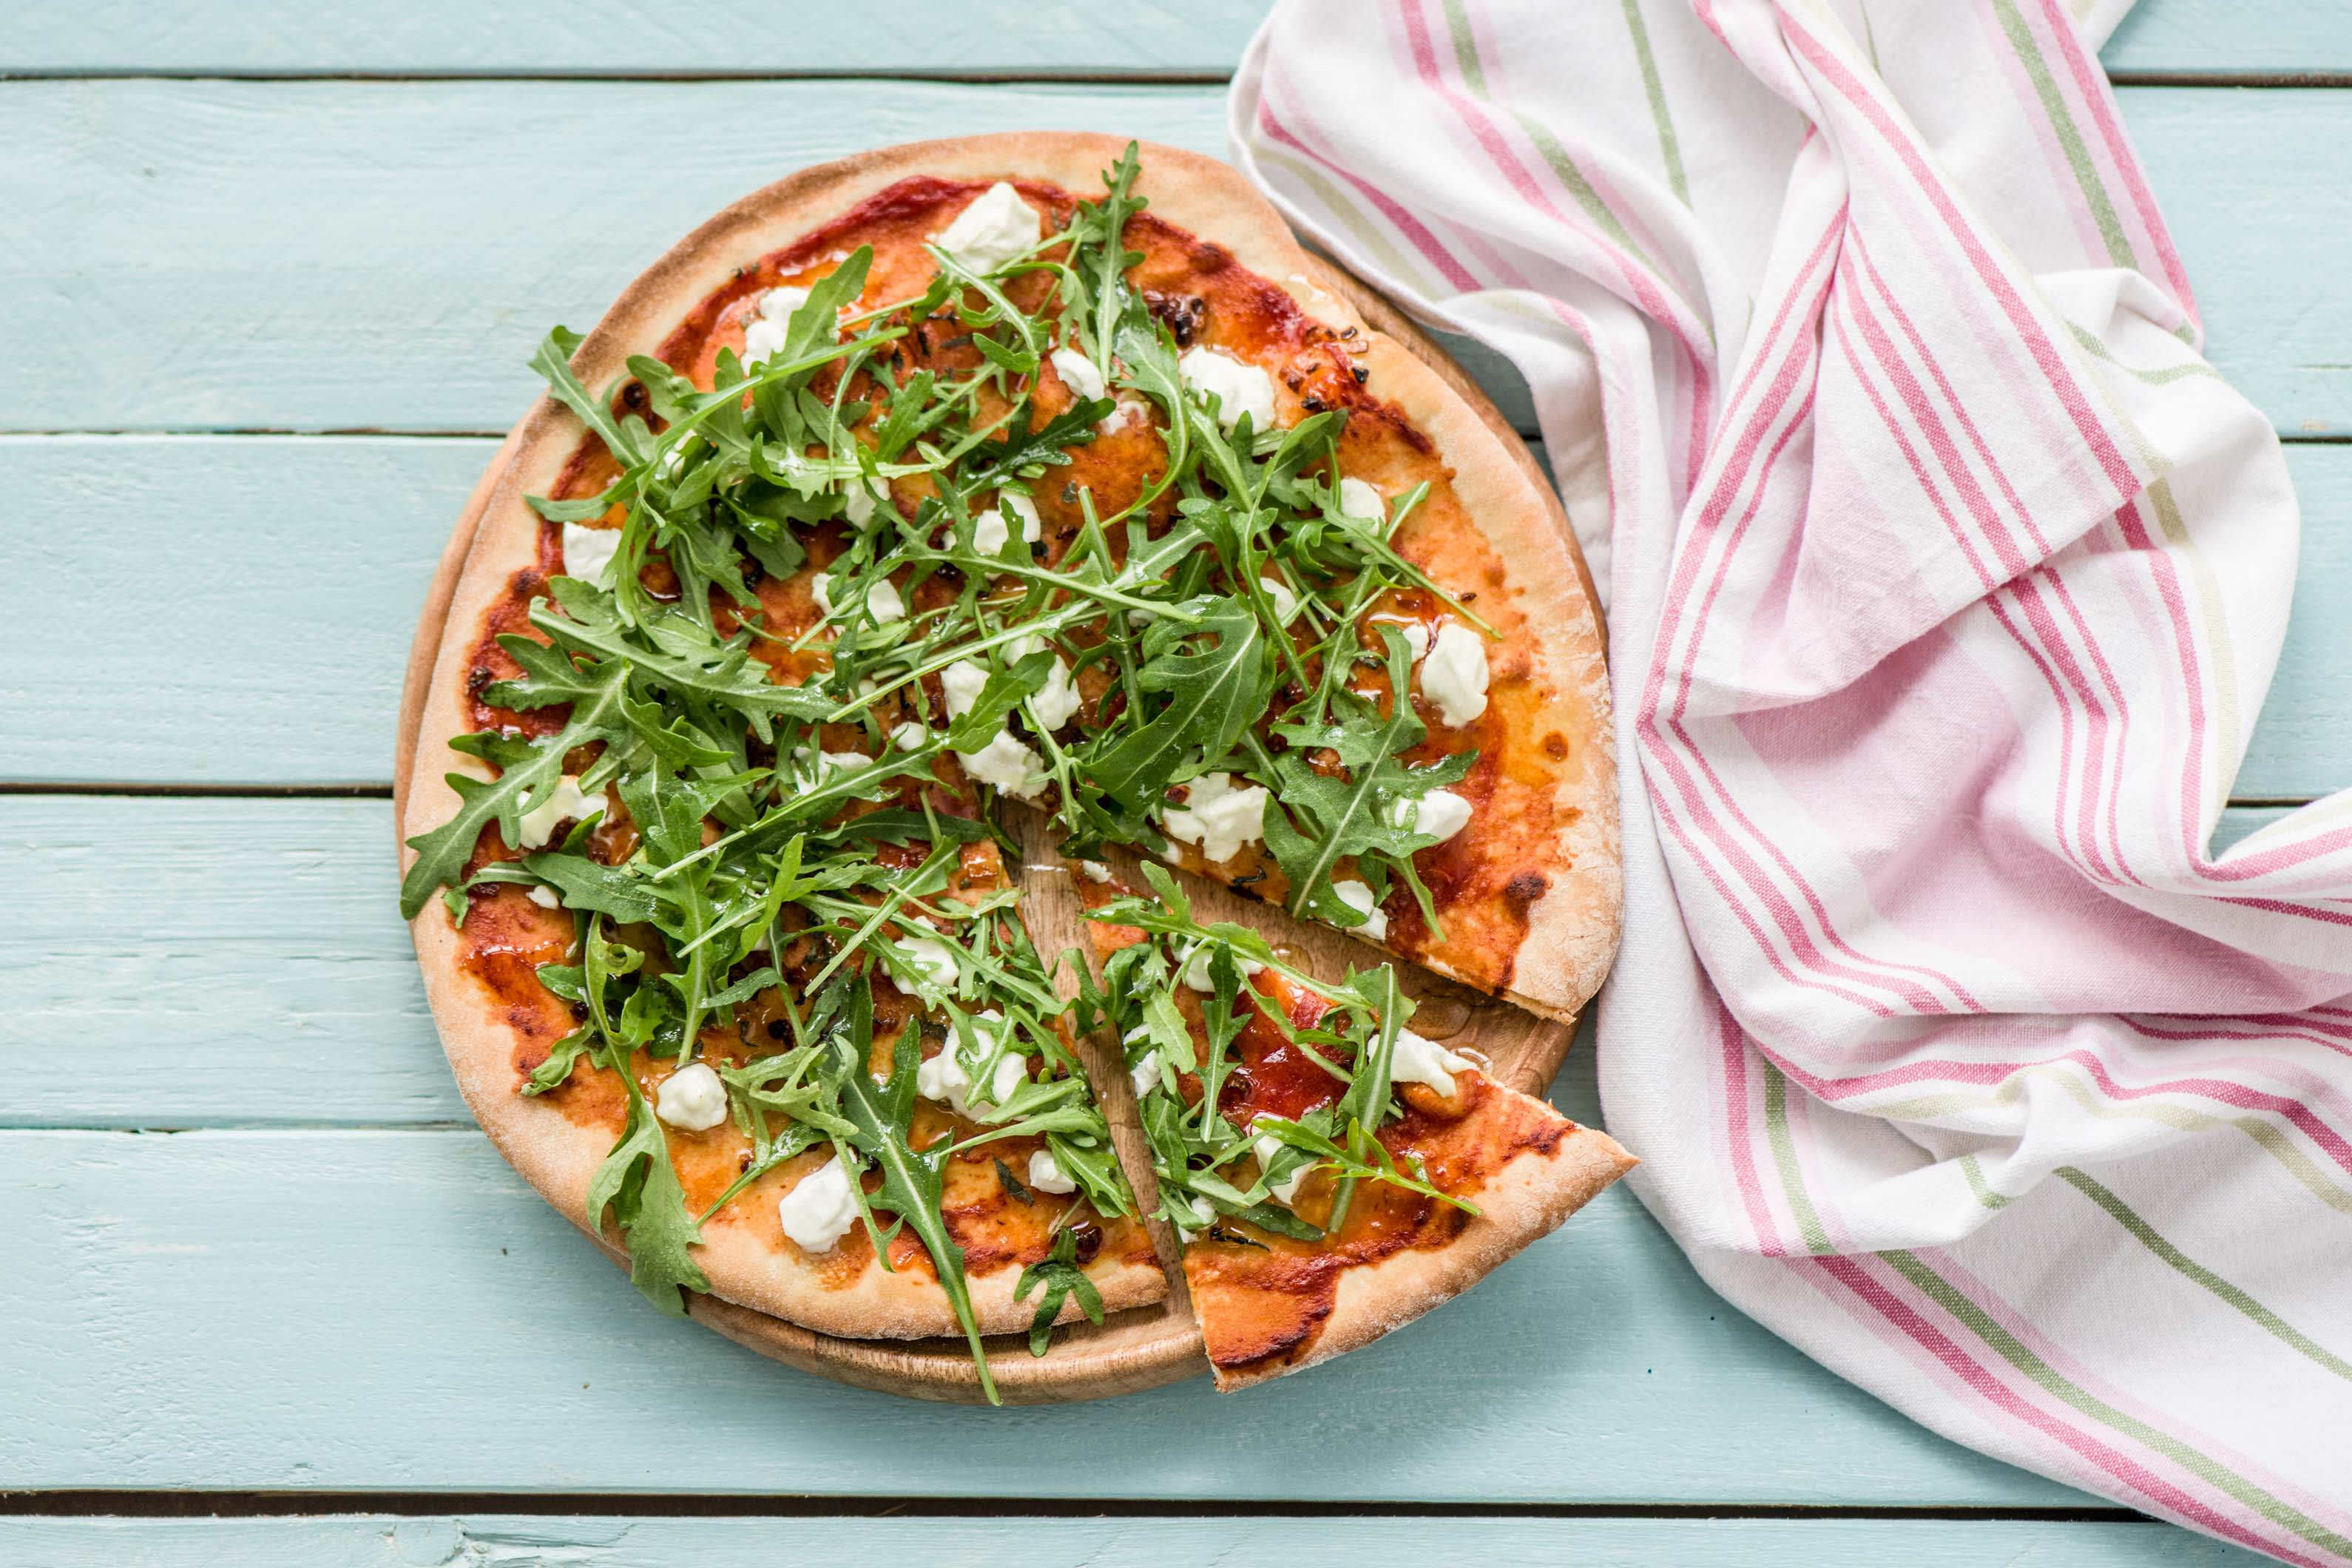 Homemade Caramelised Red Onion, Goat's Cheese and Rocket Flatbread Pizza